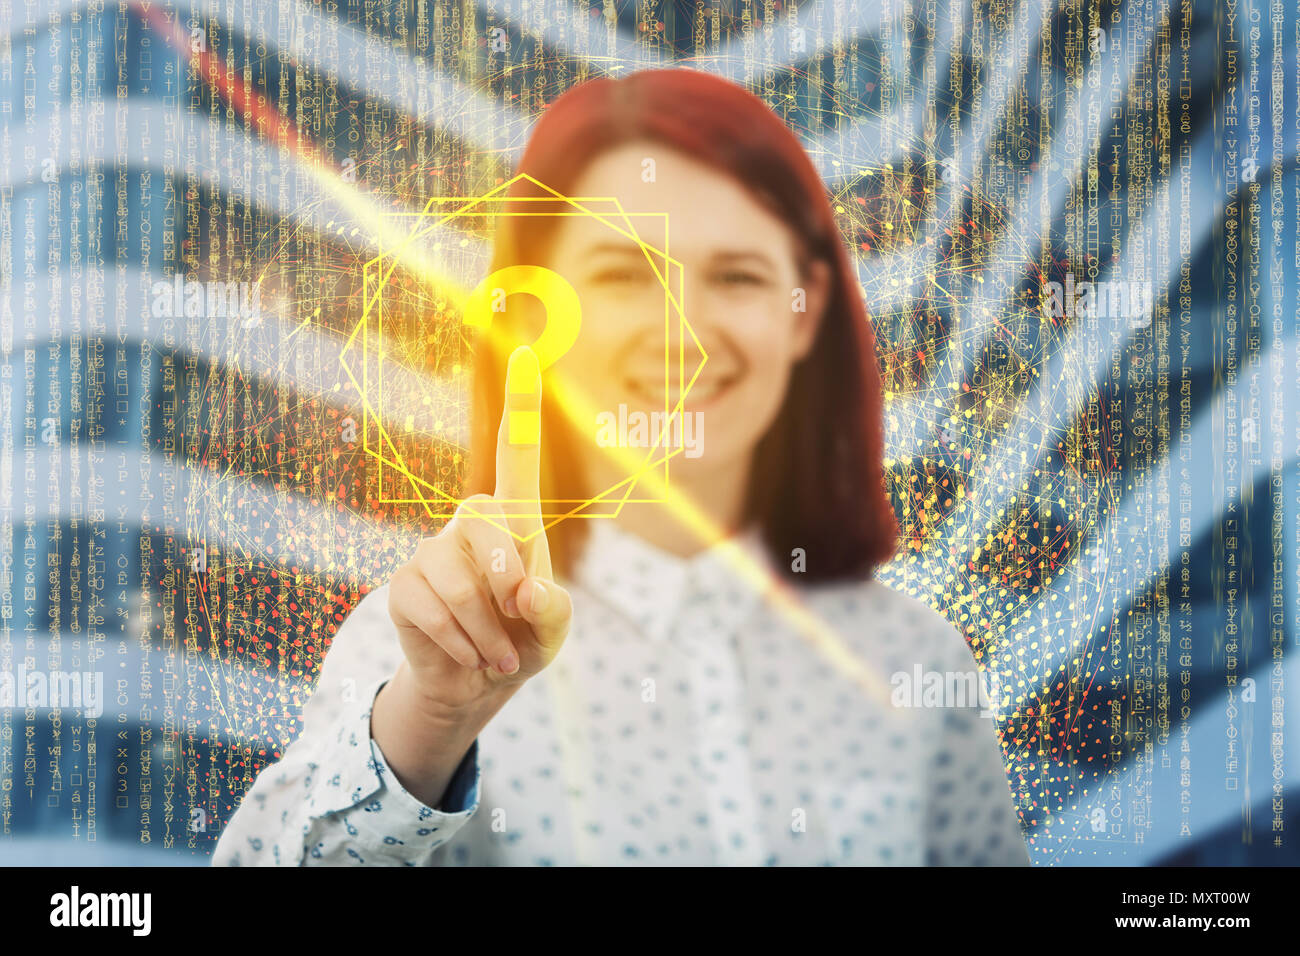 Get answer to all questions. Digital searching software as a smiling woman touch a virtual screen interface, pressing the golden interrogation mark. M - Stock Image